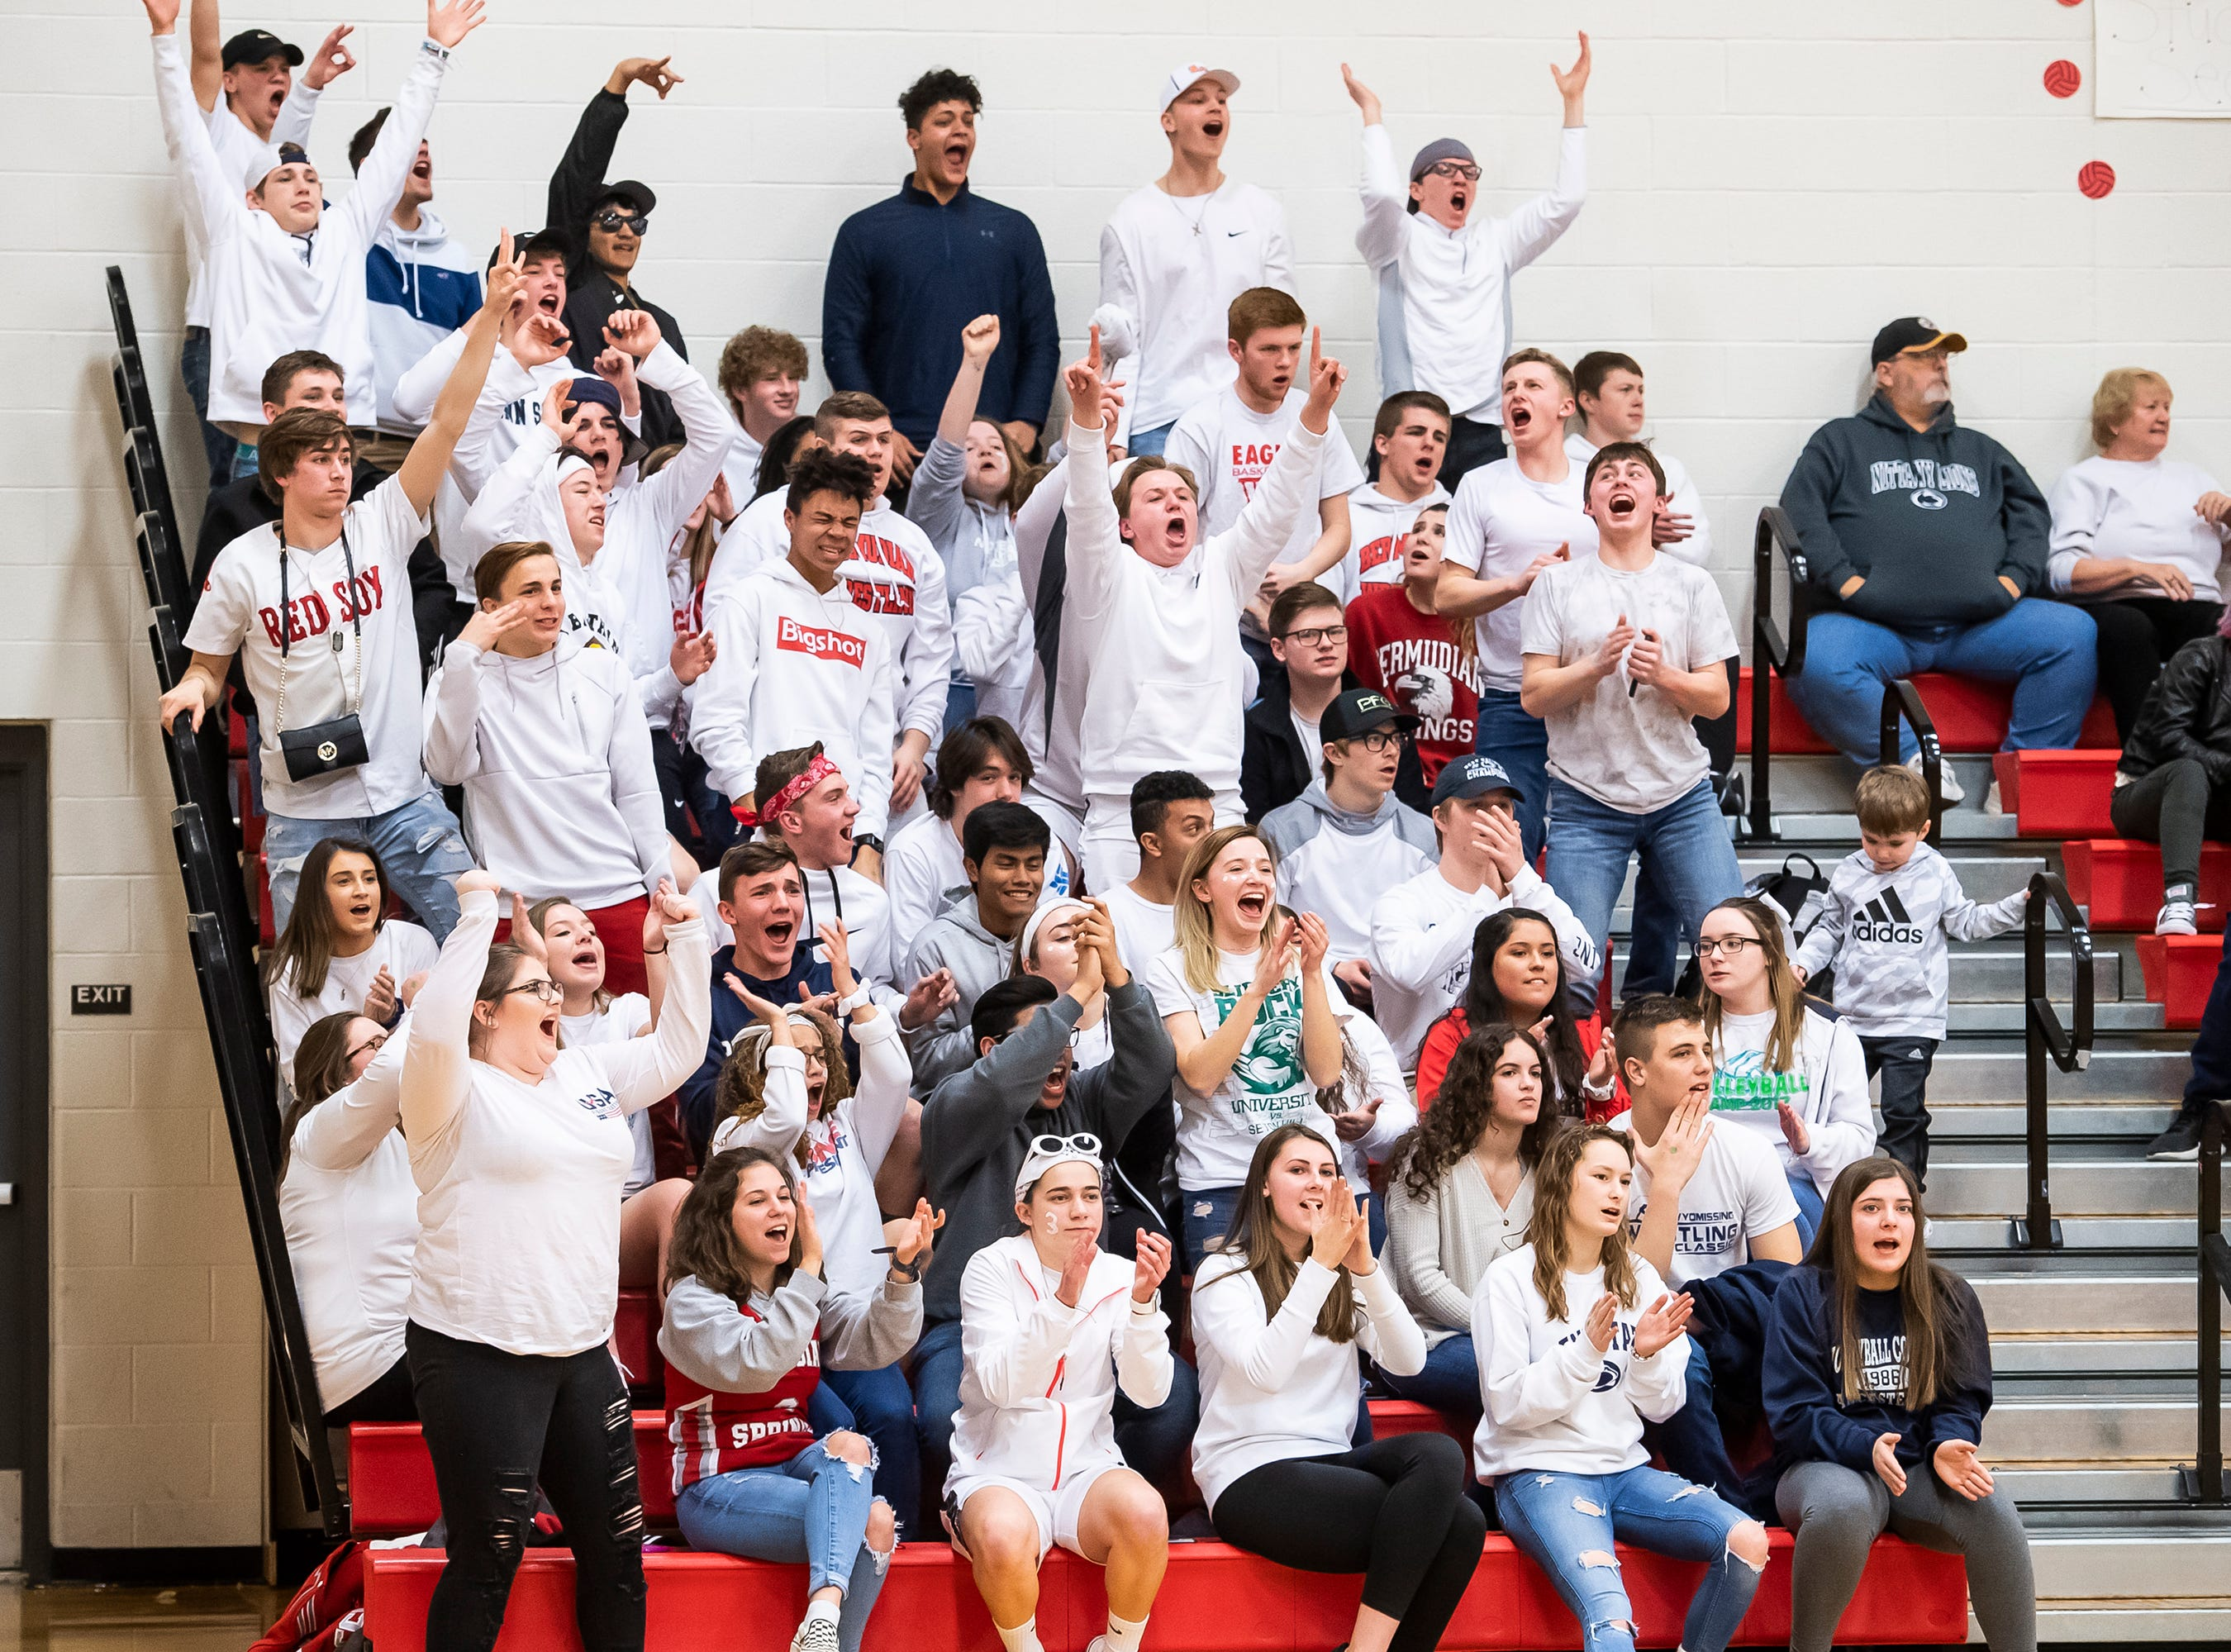 The Bermudian Springs student section cheers after the Eagles score late in the fourth quarter against Northern Lebanon. Bermudian stormed back in the second half of the game after trailing by as many as nine points.